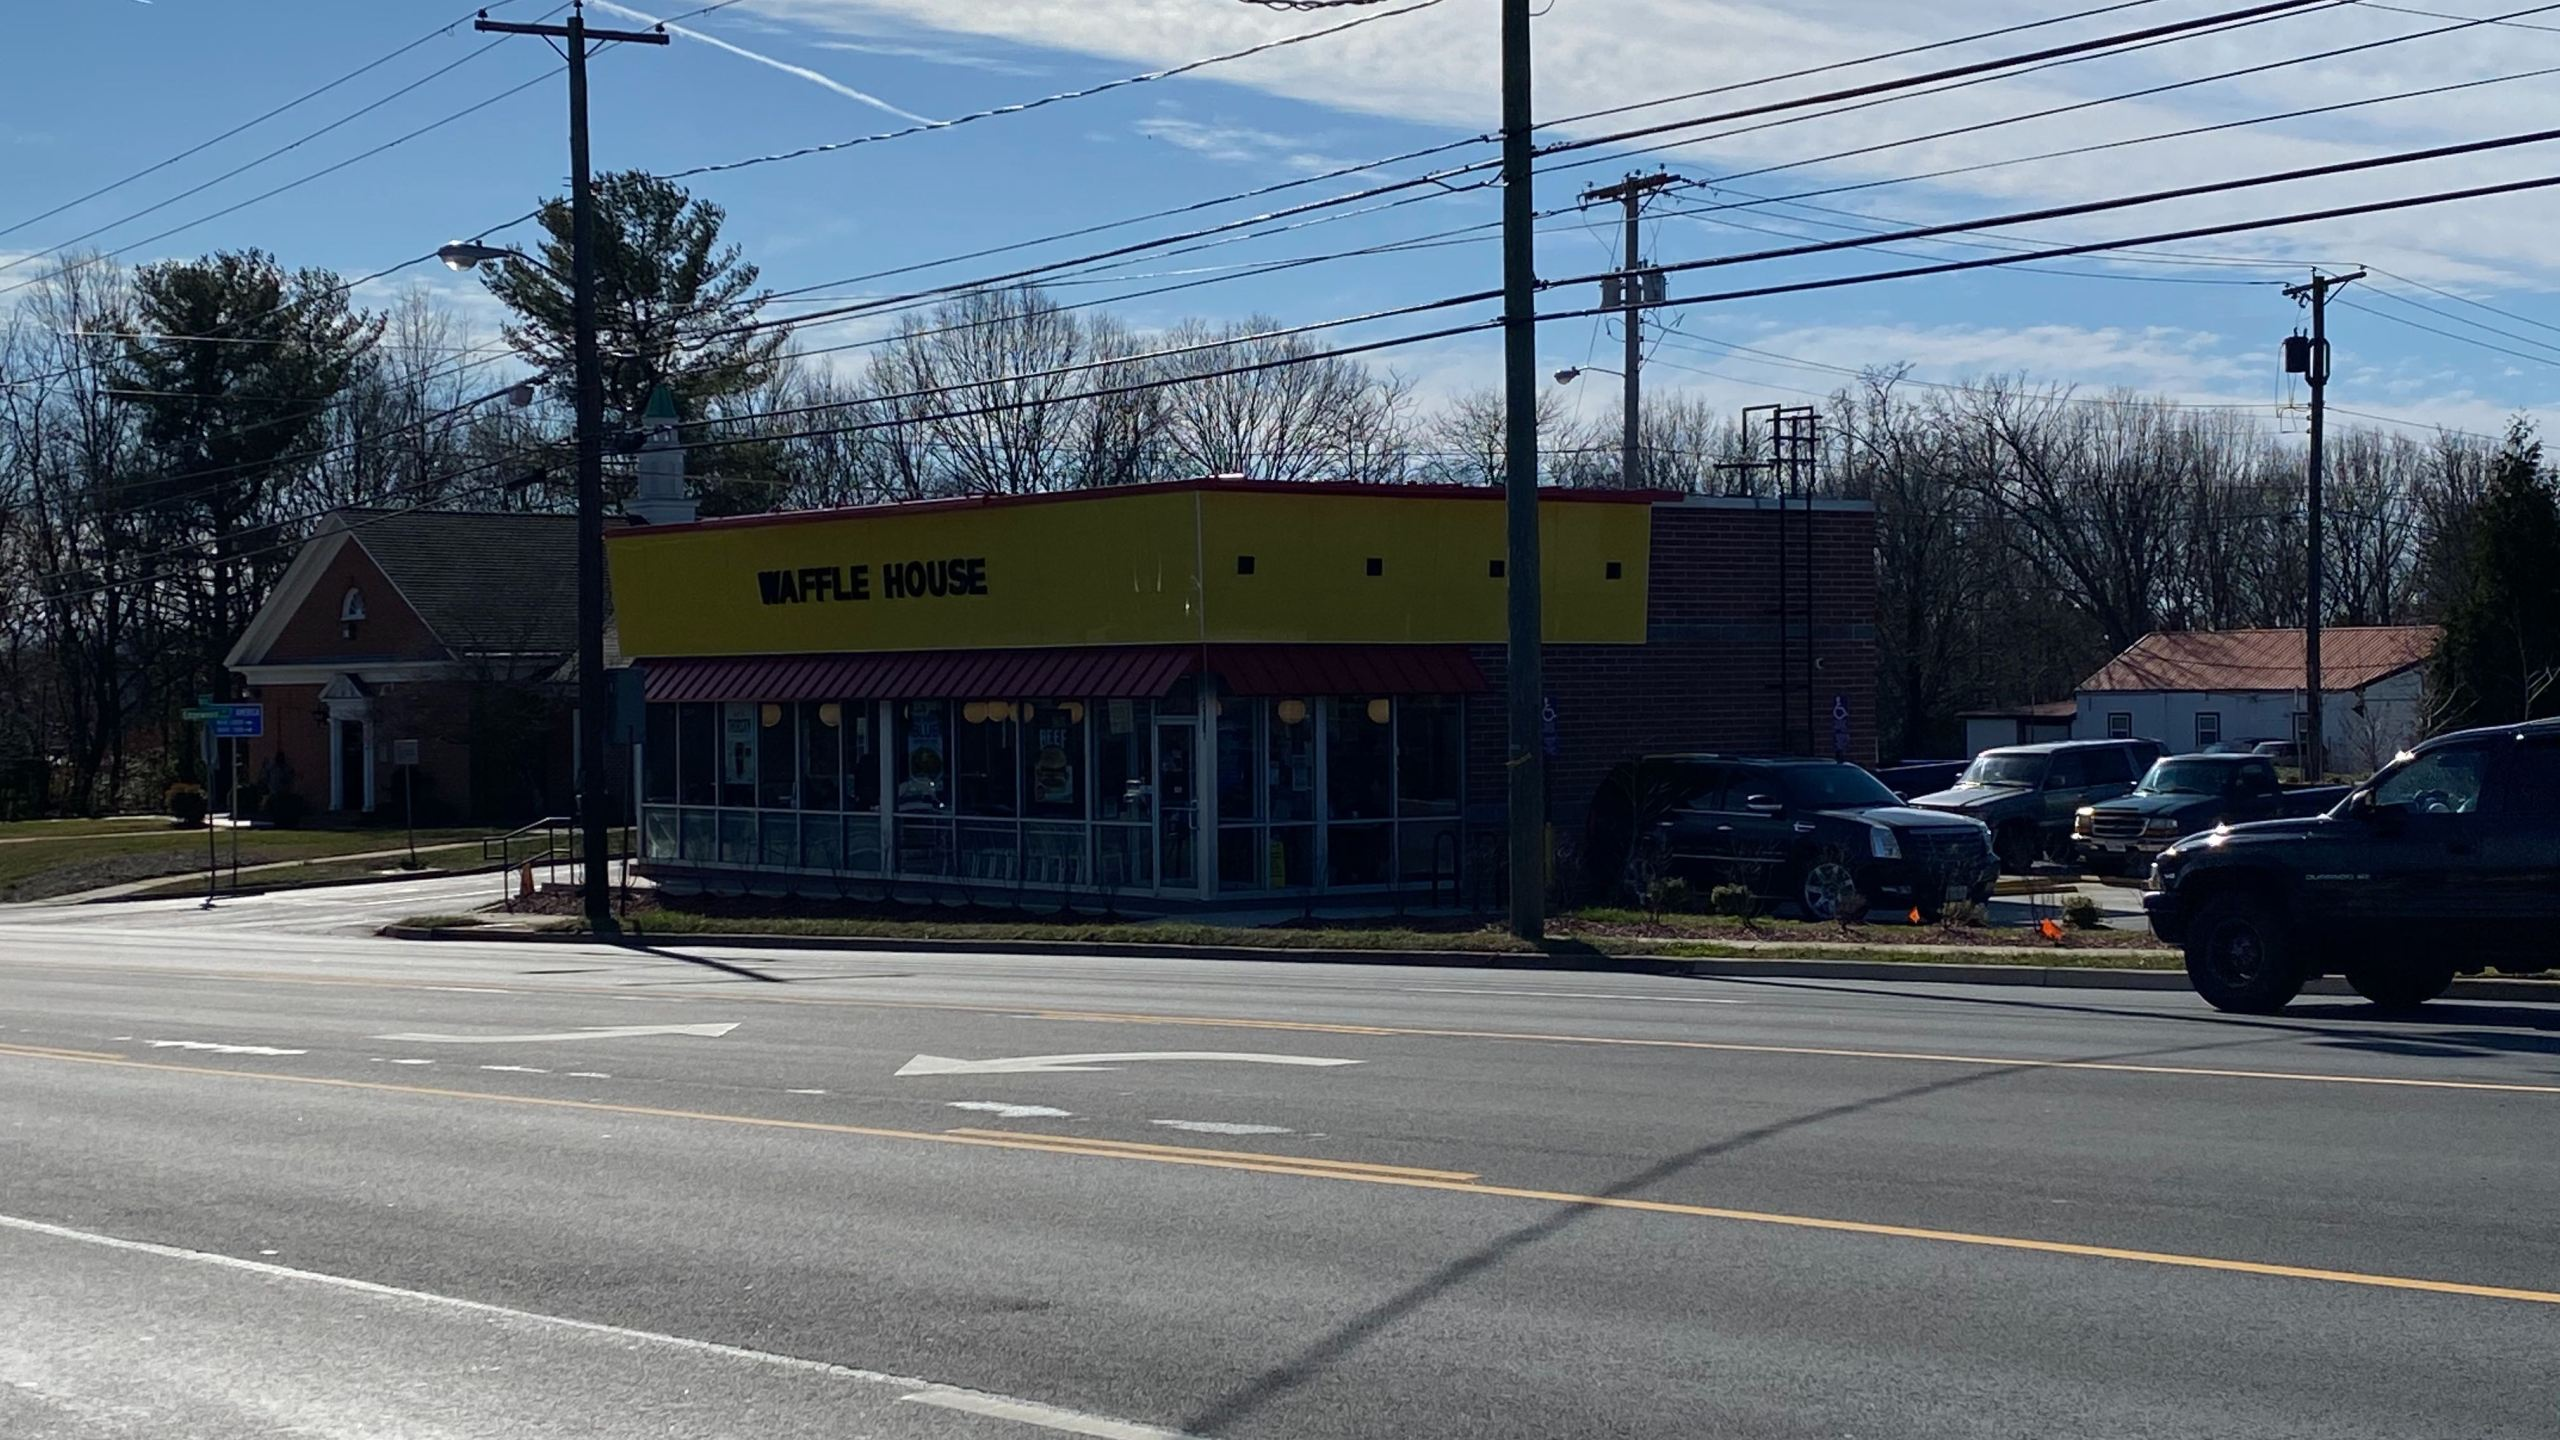 A Waffle House employee confirmed that the fight took place at the restaurant. (Photo: Ryan Saylor/WFXR News)